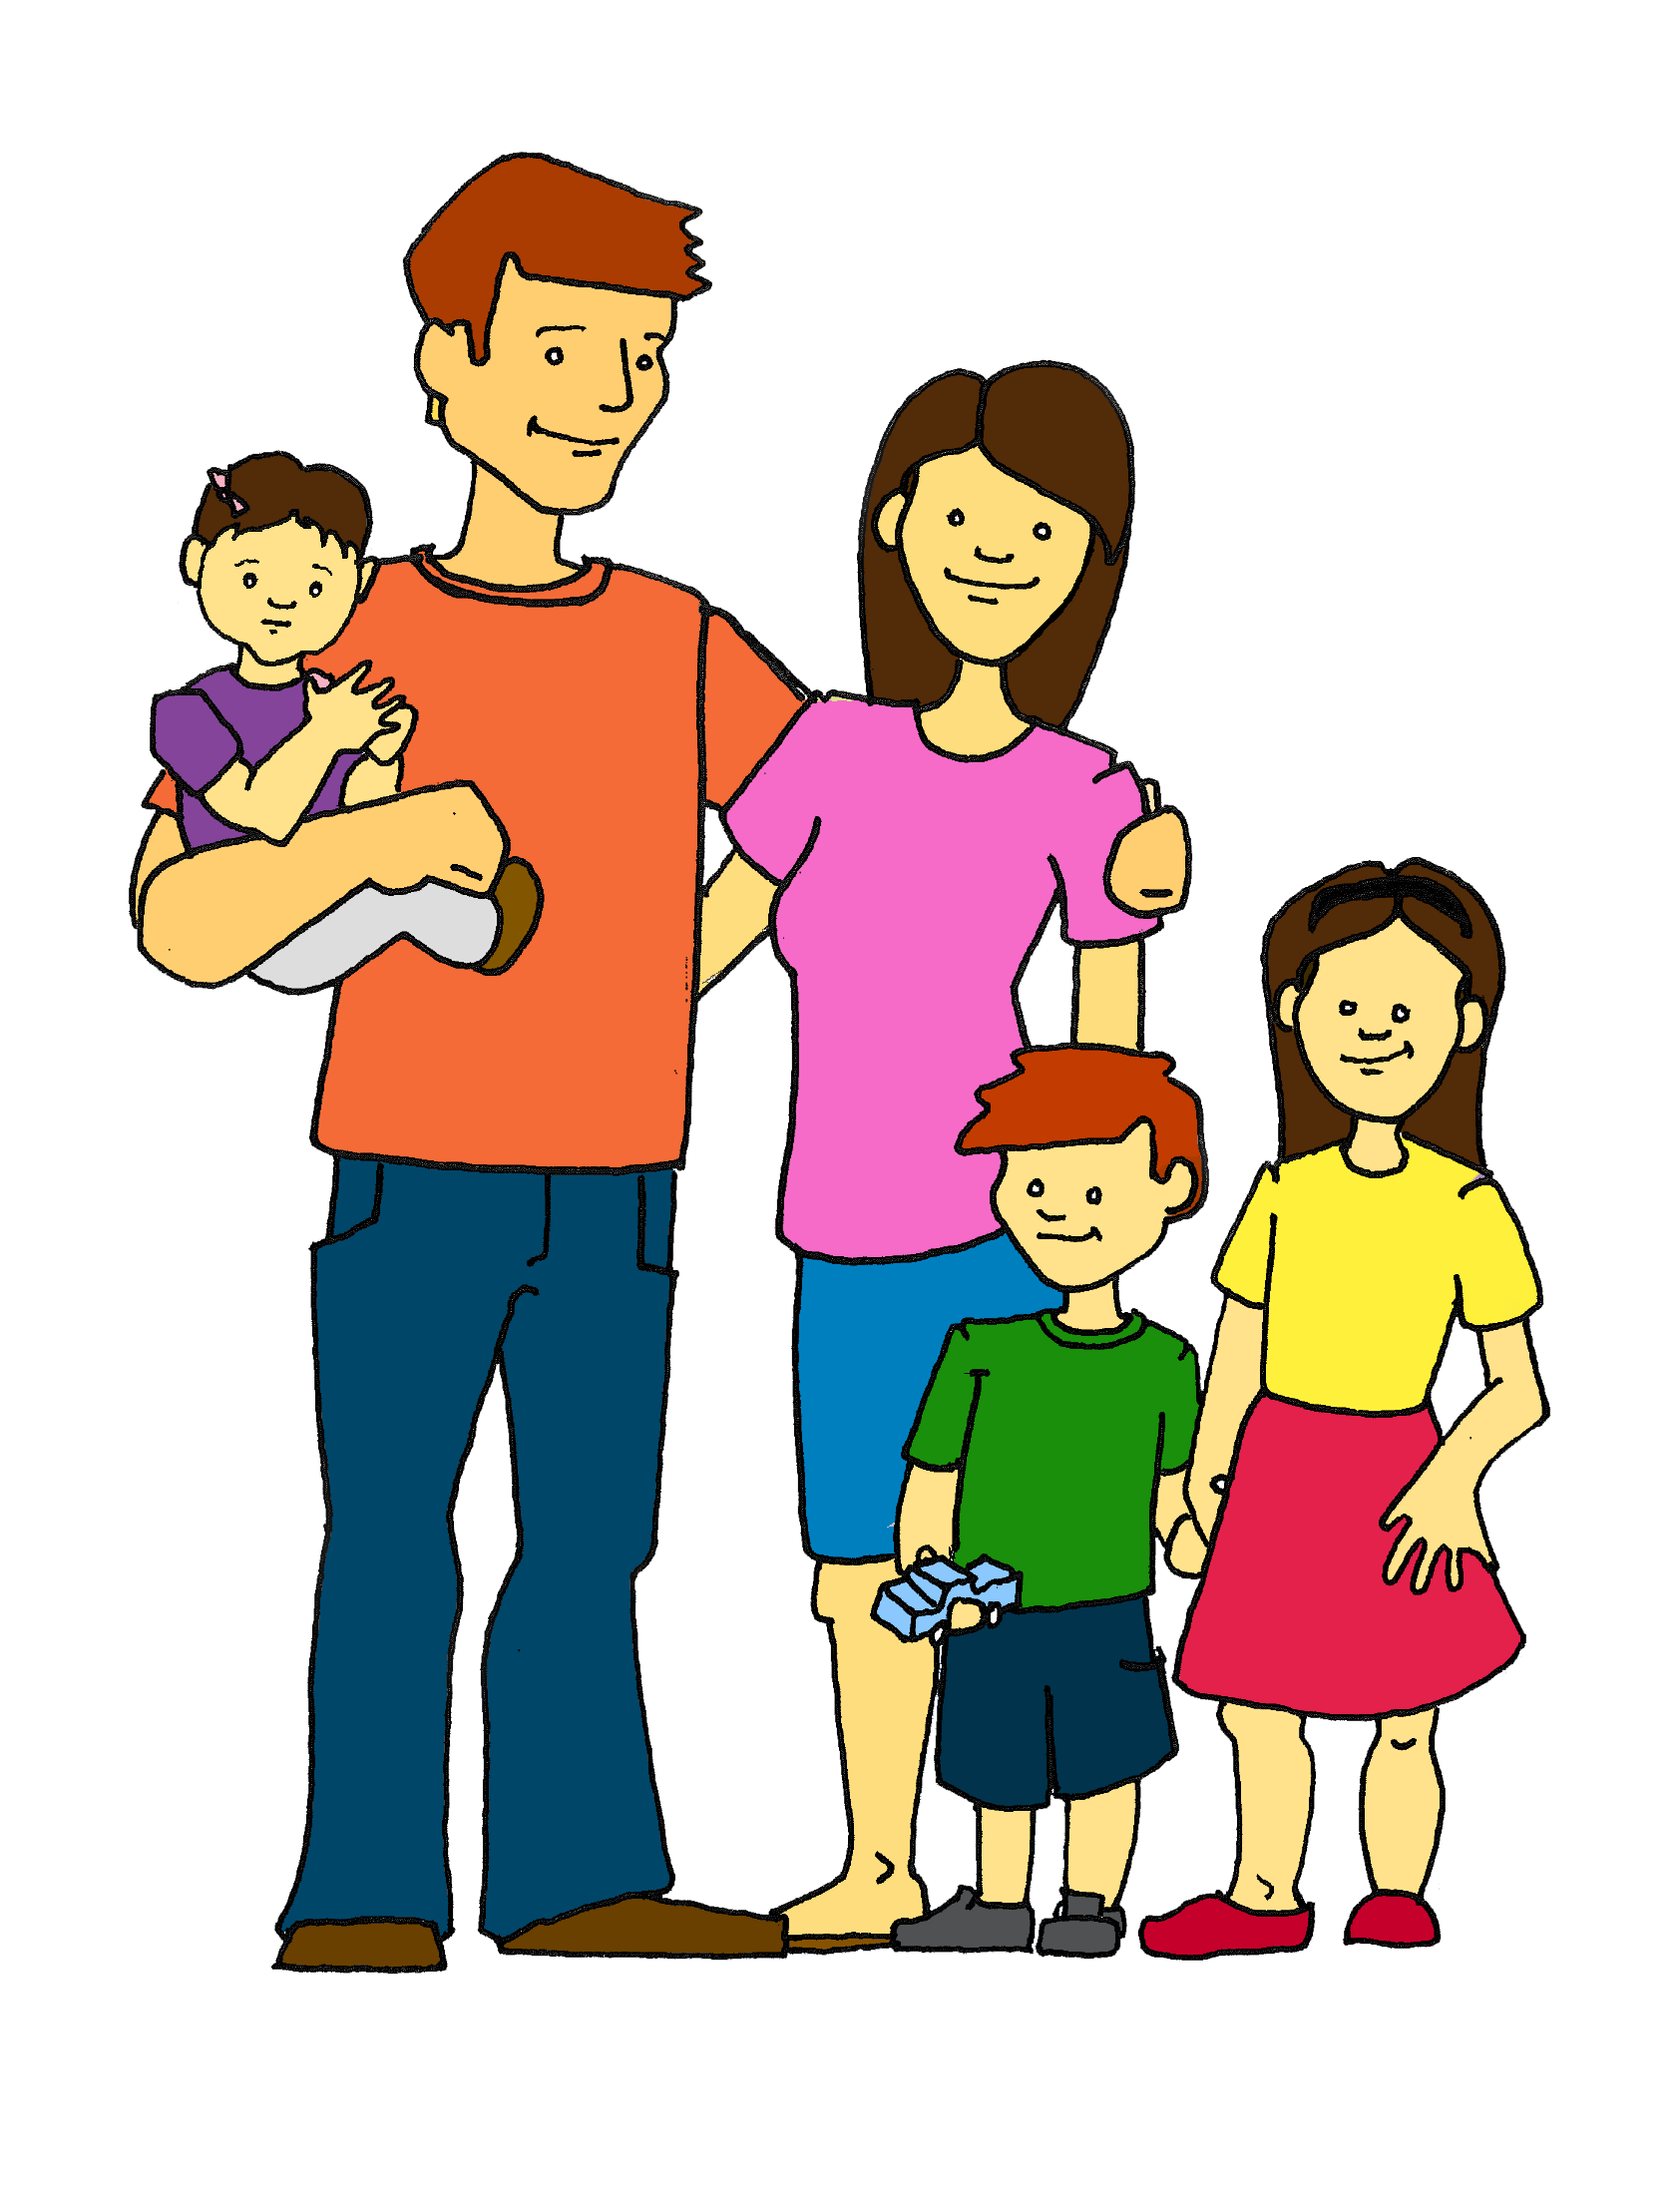 Family Clipart Free Clipart Image 7-Family clipart free clipart image 7-14